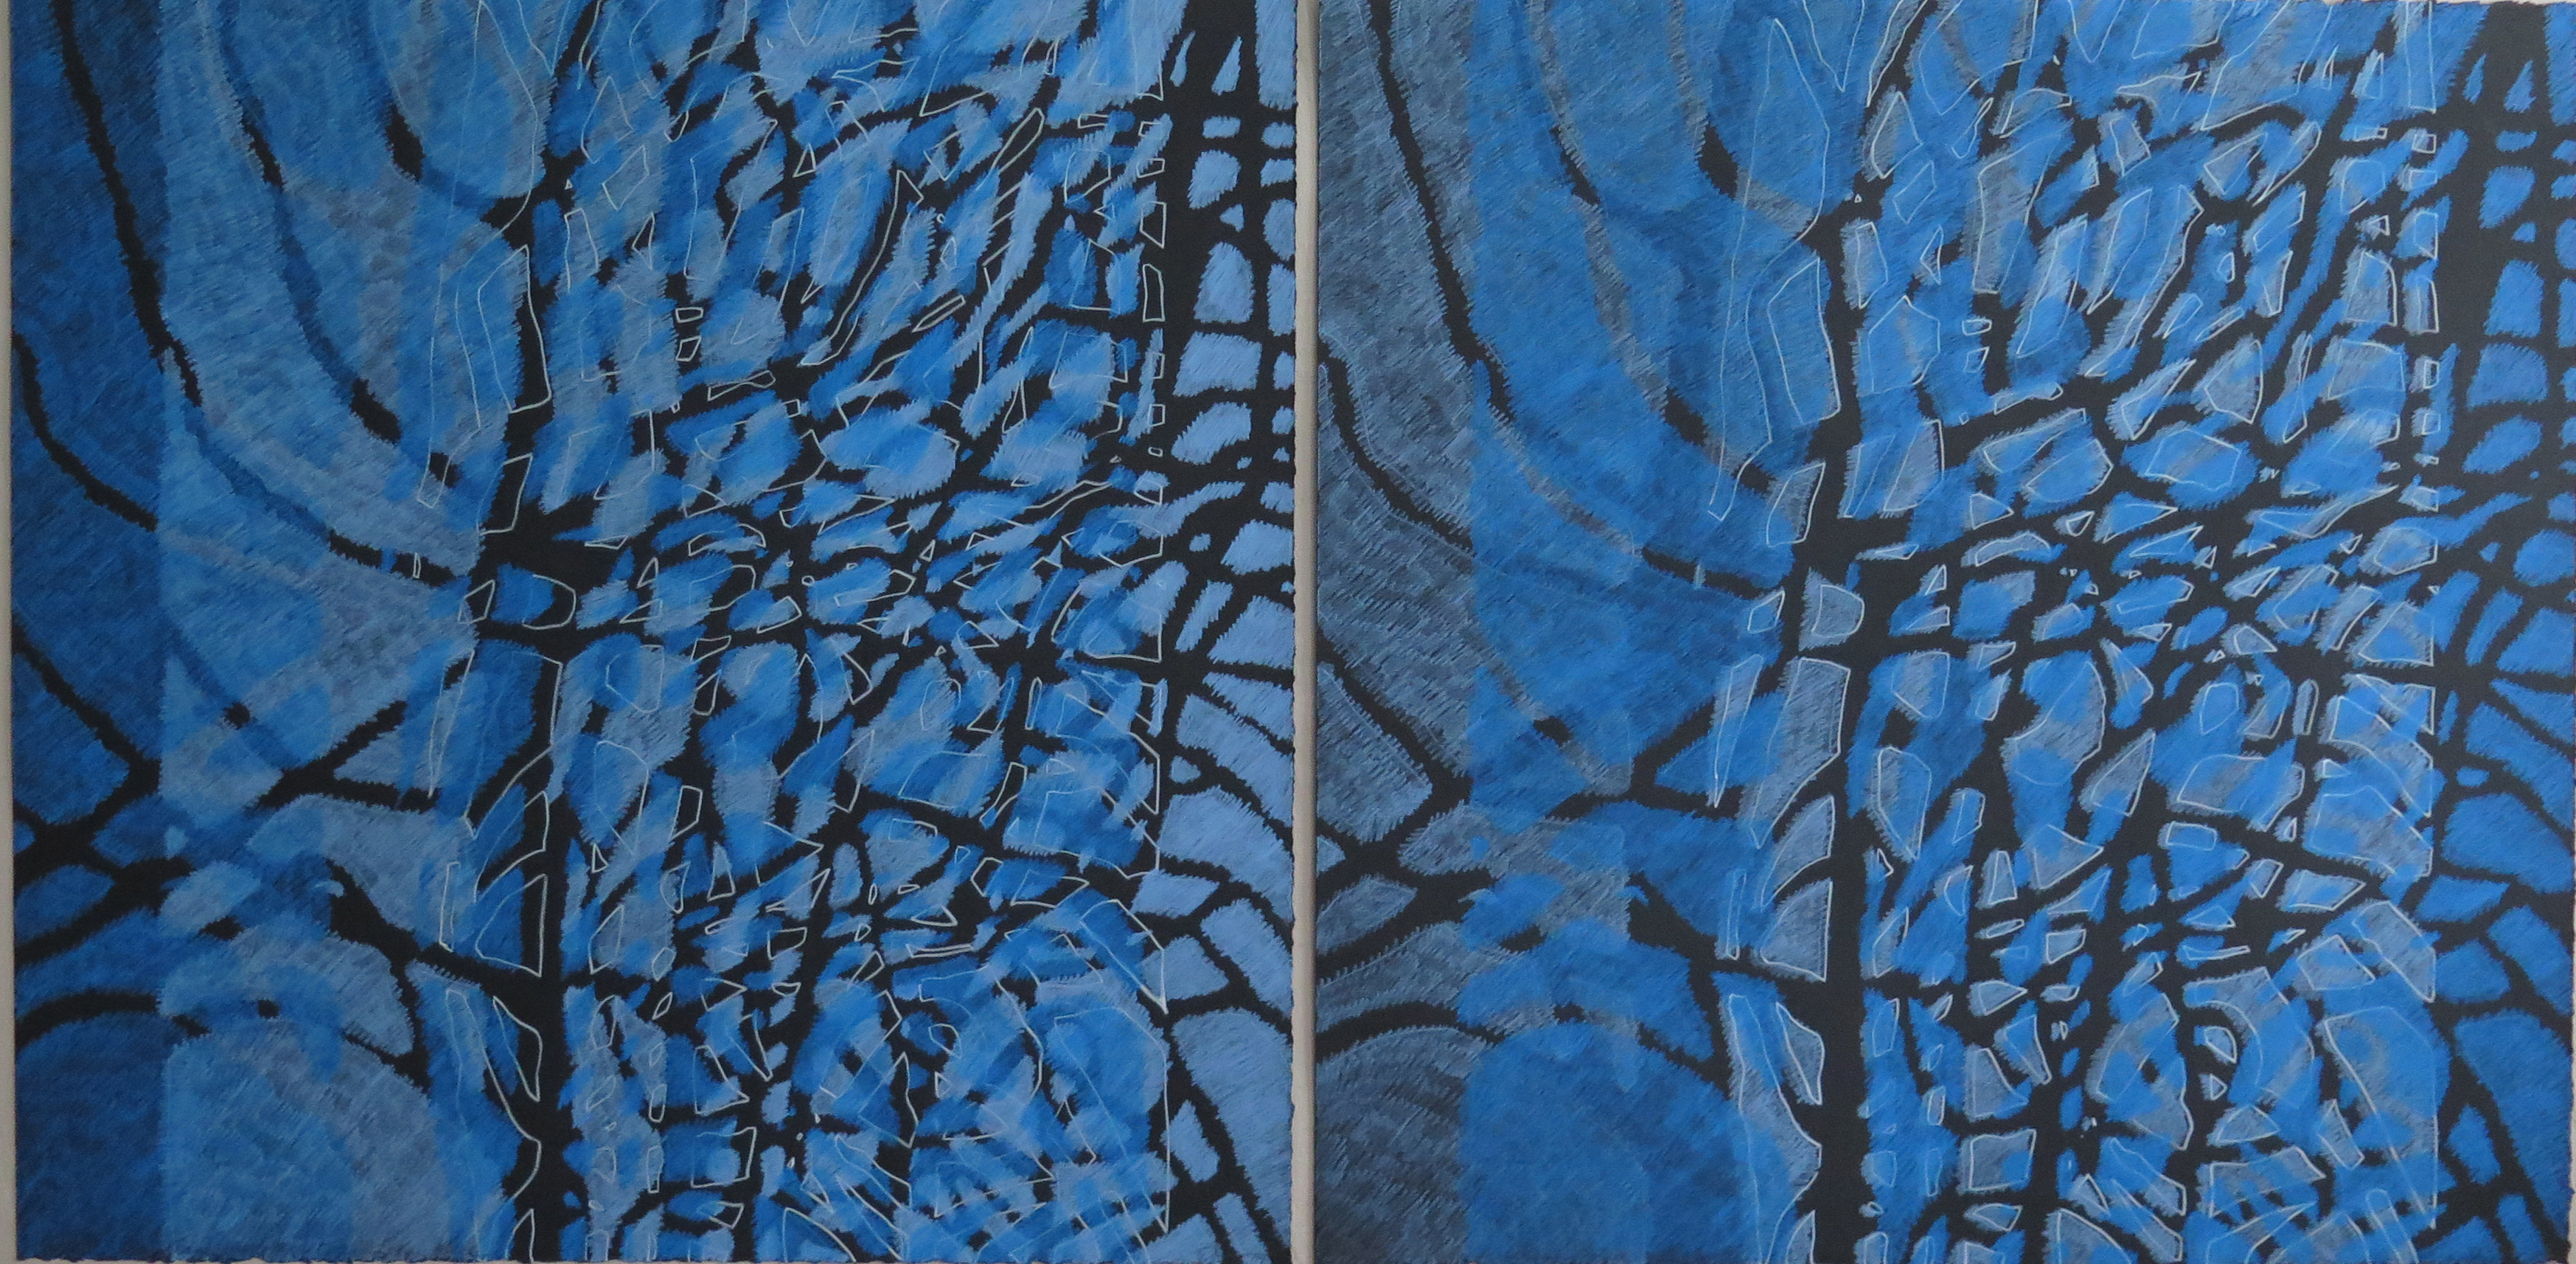 Lyn Horton Shift Series, 2019-20, blue violet light and sky blue light and sky blue light and blue violet light pair, 2020, 22.25 in h x 45 in w, colored pencil on black rag paper